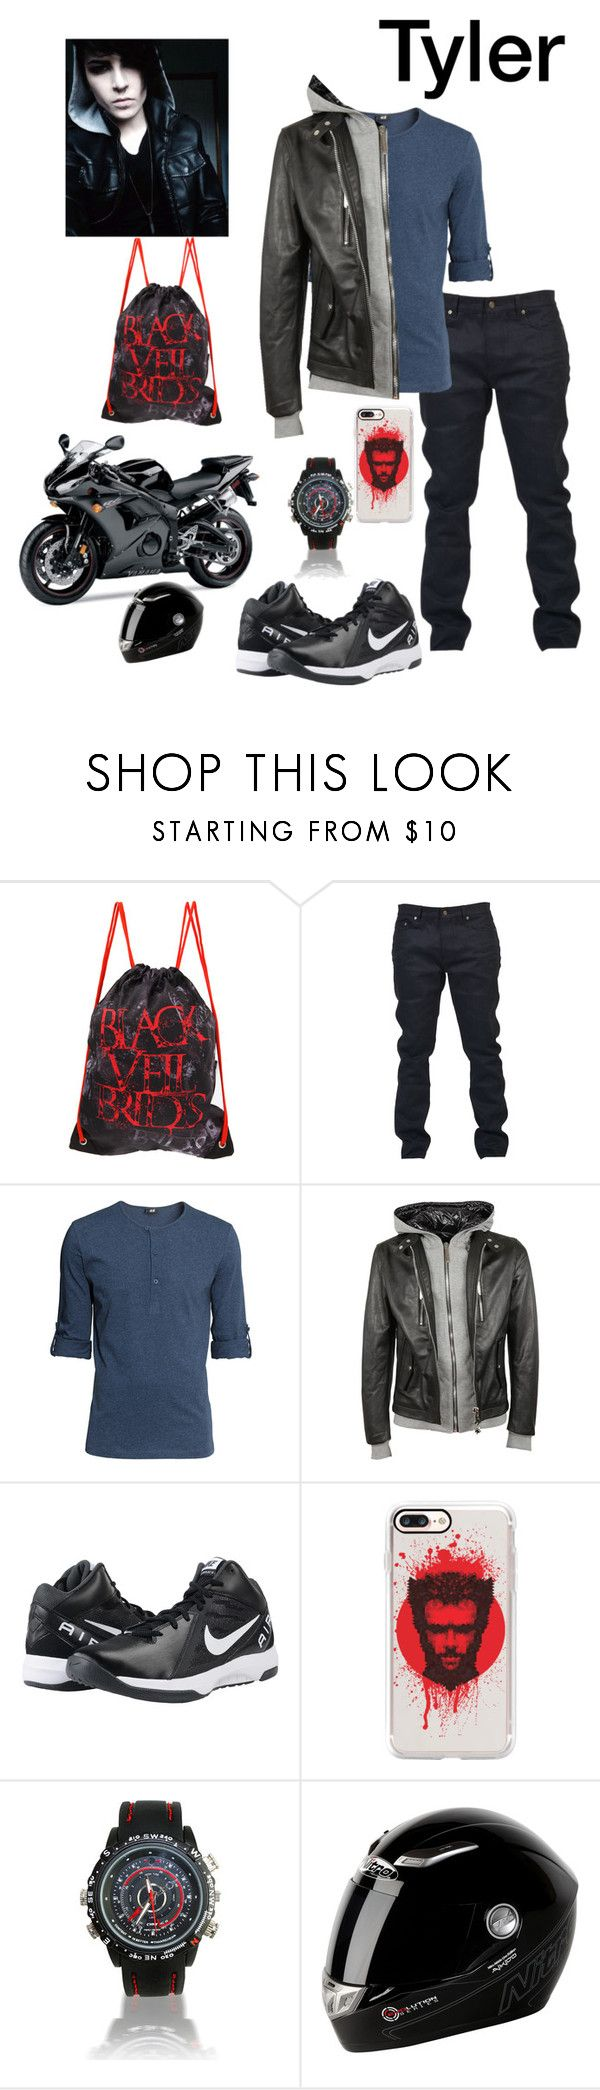 """""""Tyler"""" by ironkyle ❤ liked on Polyvore featuring Yves Saint Laurent, H&M, Philipp Plein, NIKE, Casetify, Yamaha and All Black"""